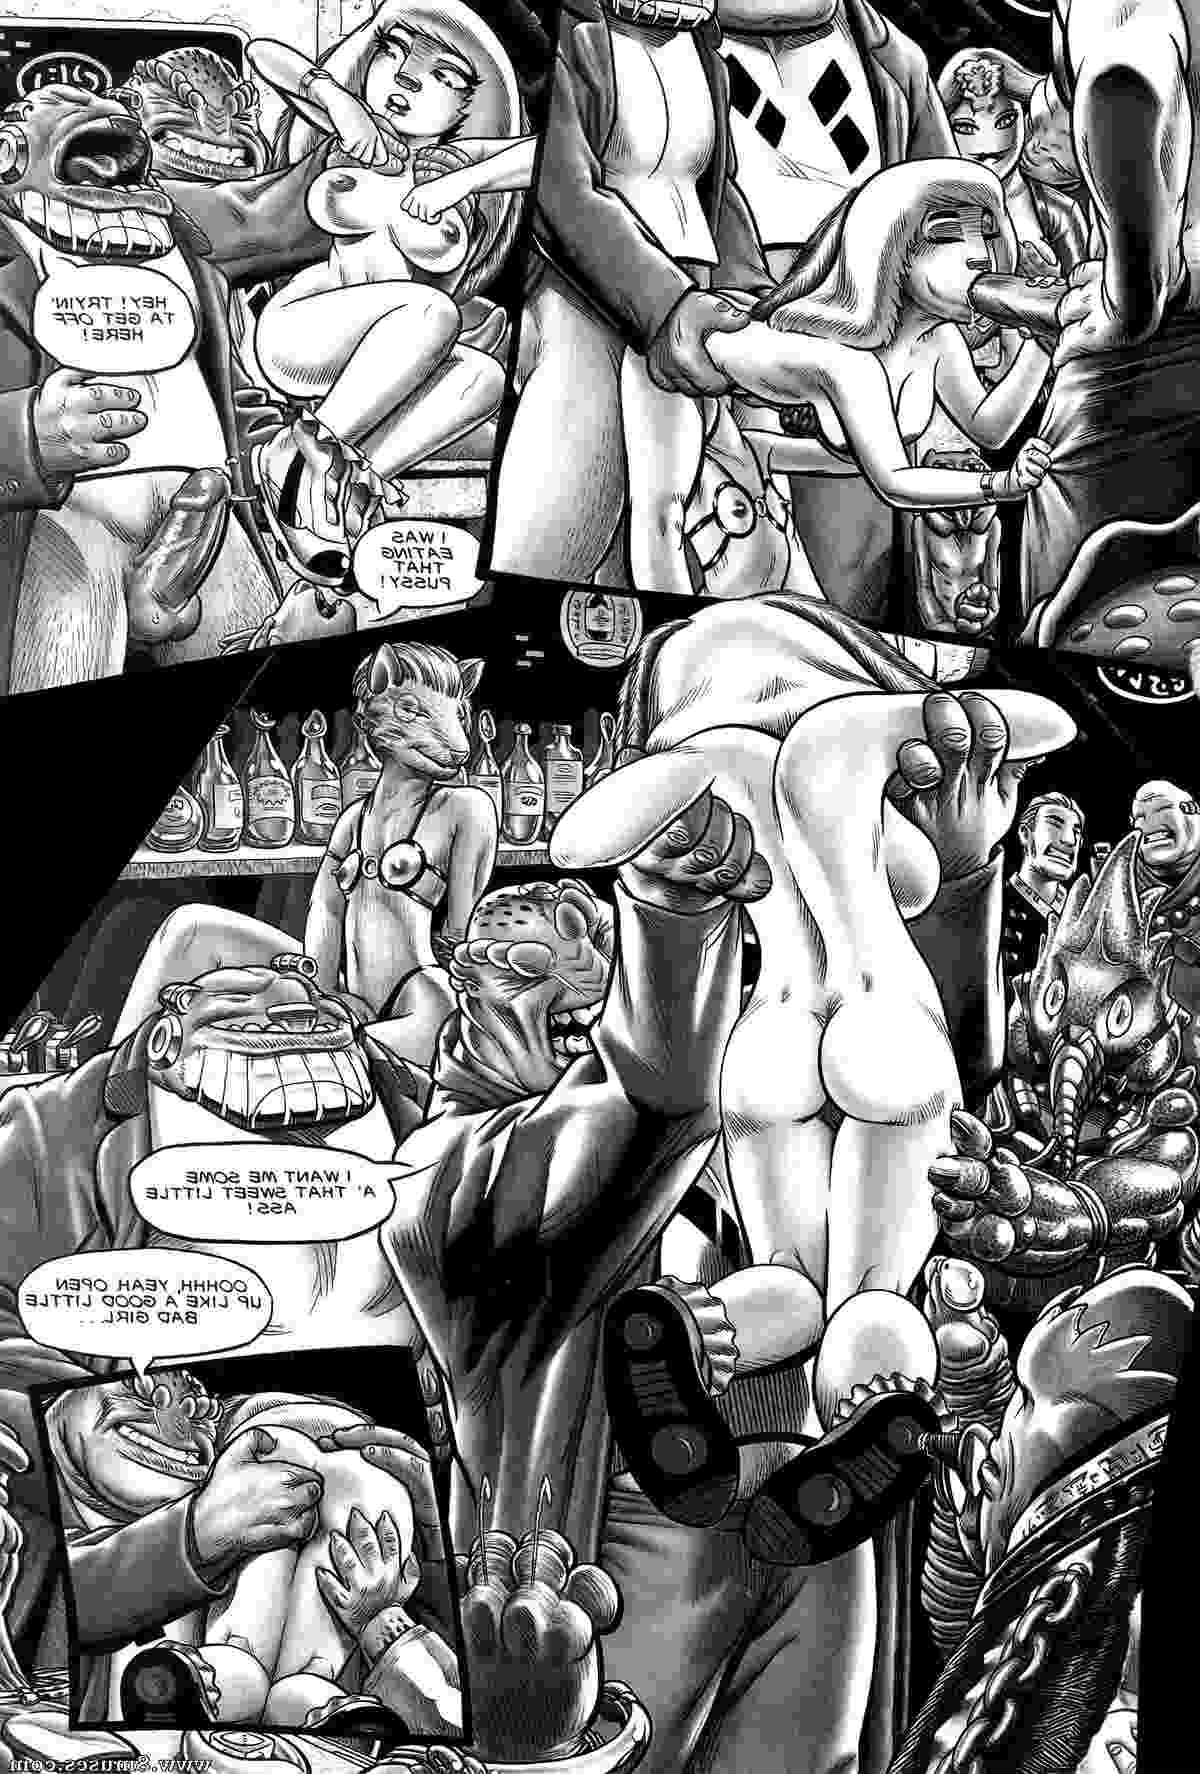 Amerotica-Comics/Short-Strokes Short_Strokes__8muses_-_Sex_and_Porn_Comics_55.jpg